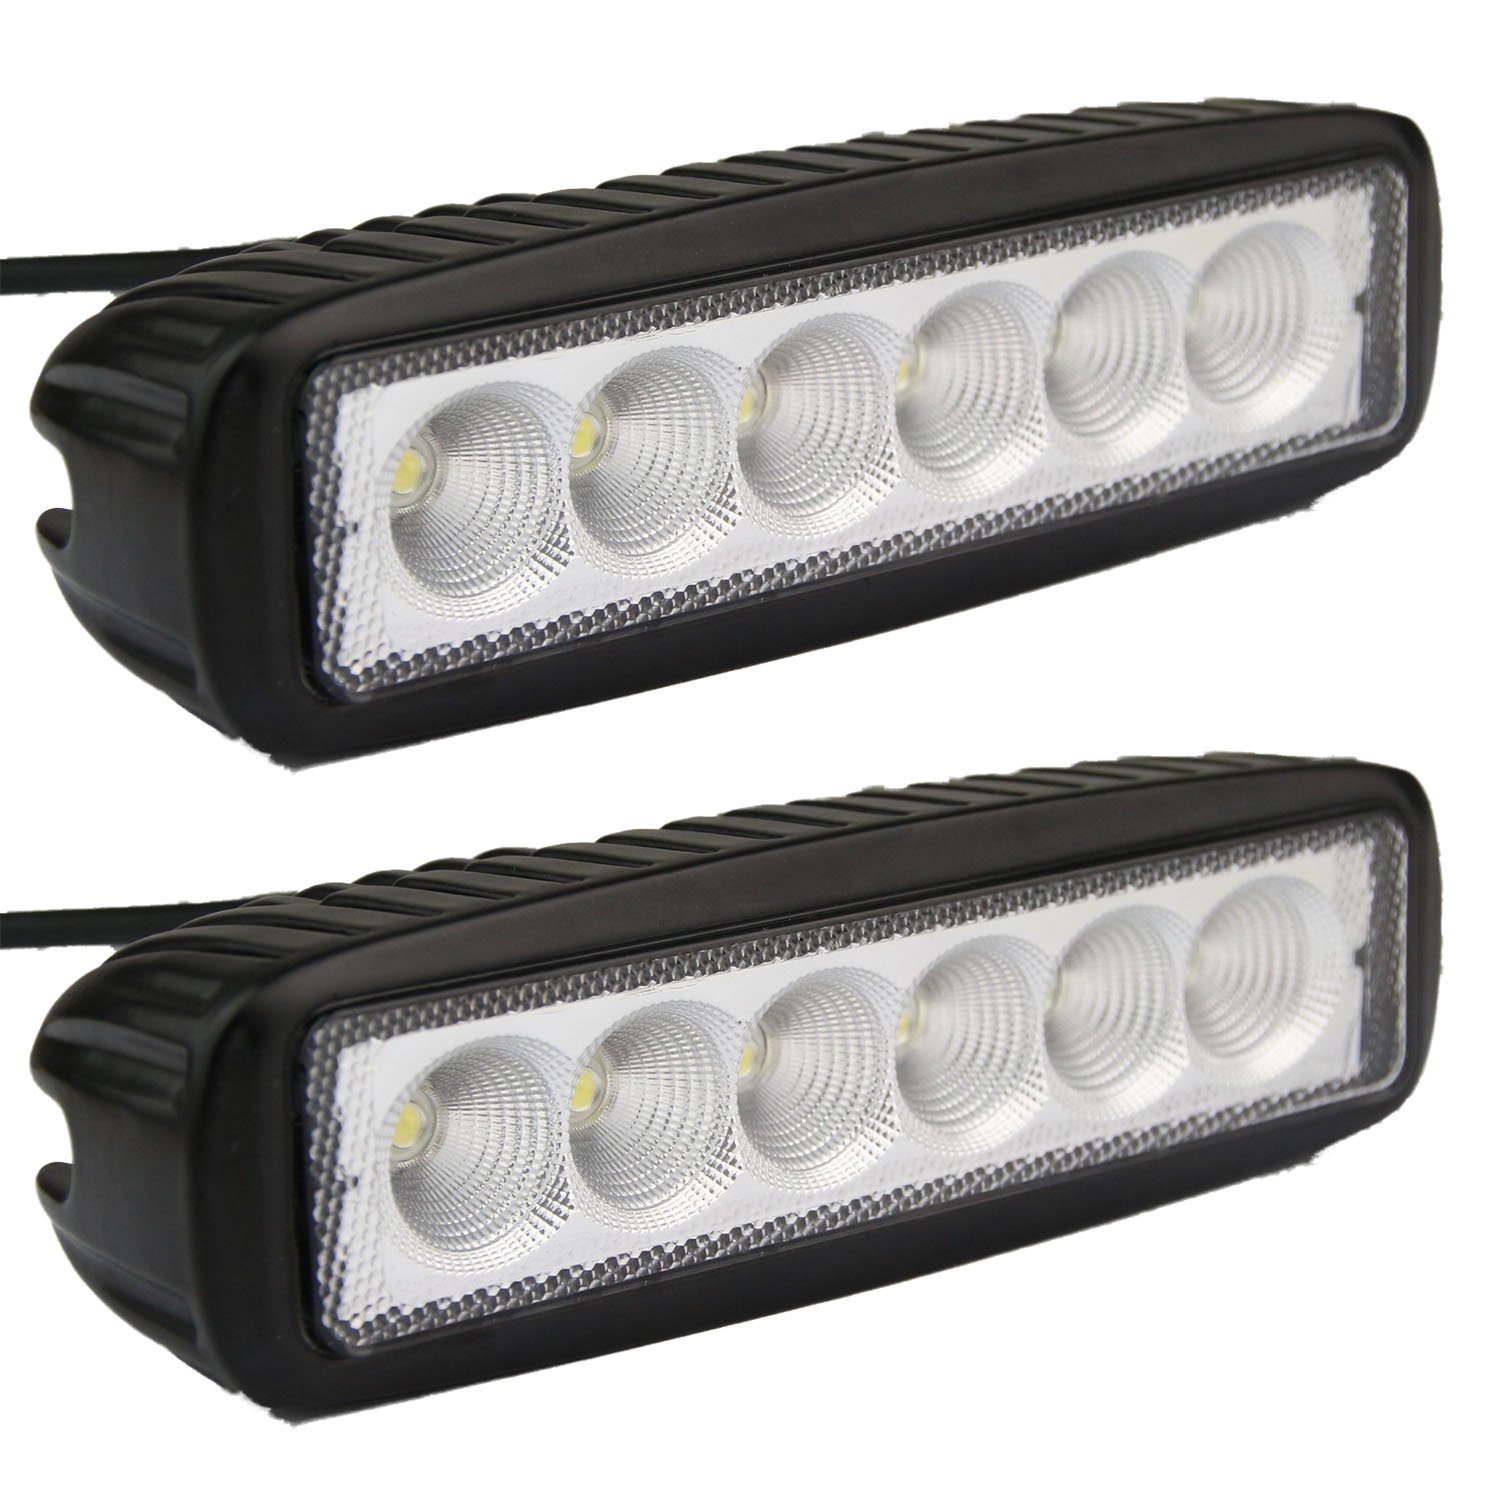 Amazon led light bar senlips 2x 18w flood light led lights amazon led light bar senlips 2x 18w flood light led lights fog light offroad light bar ip 67 waterproof for off road vehicle atv suv utv 4wd aloadofball Choice Image